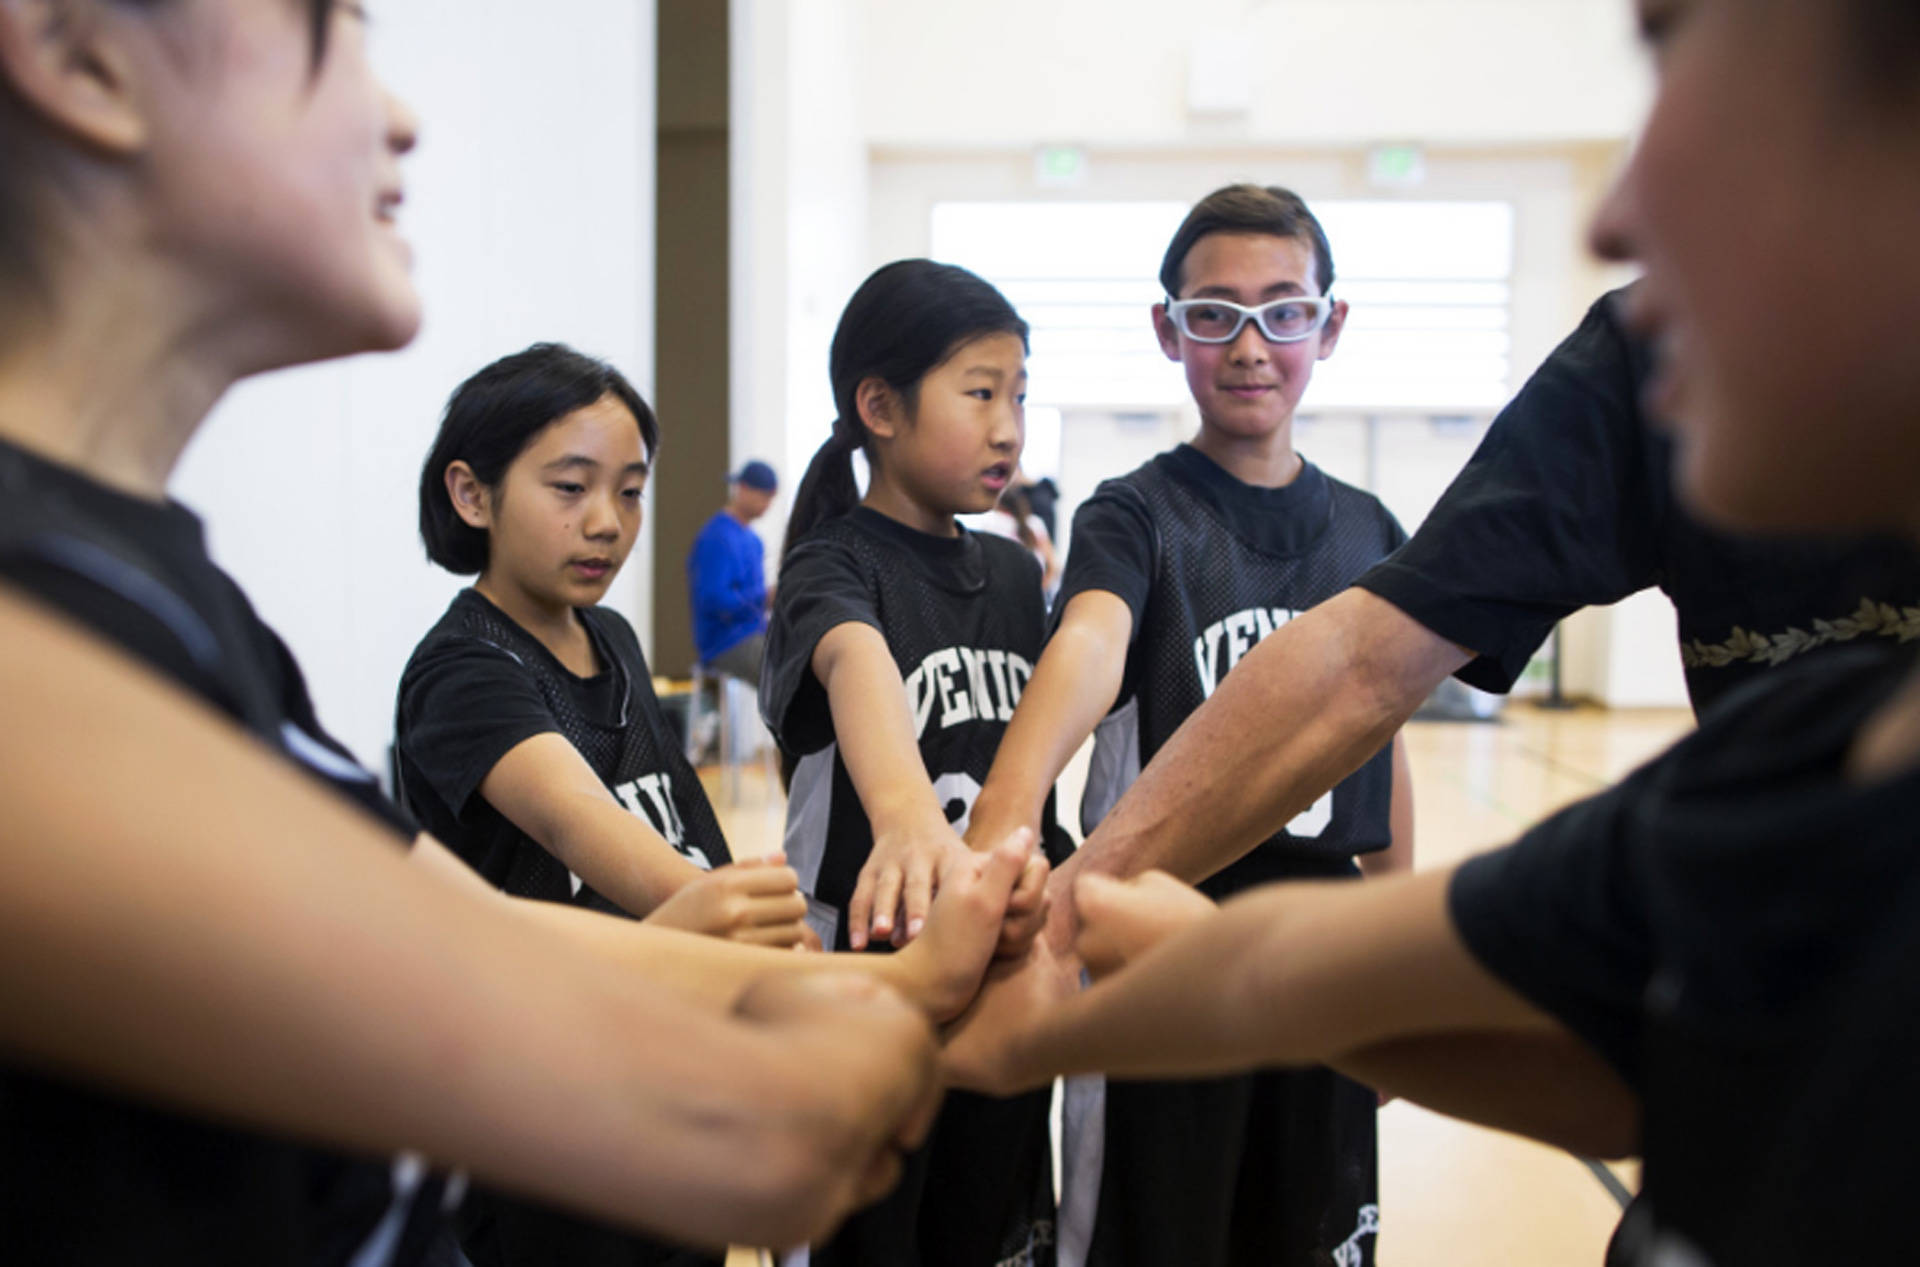 L.A.'s Little Tokyo Looks to Basketball to Revive a Community, With Help From the Lakers